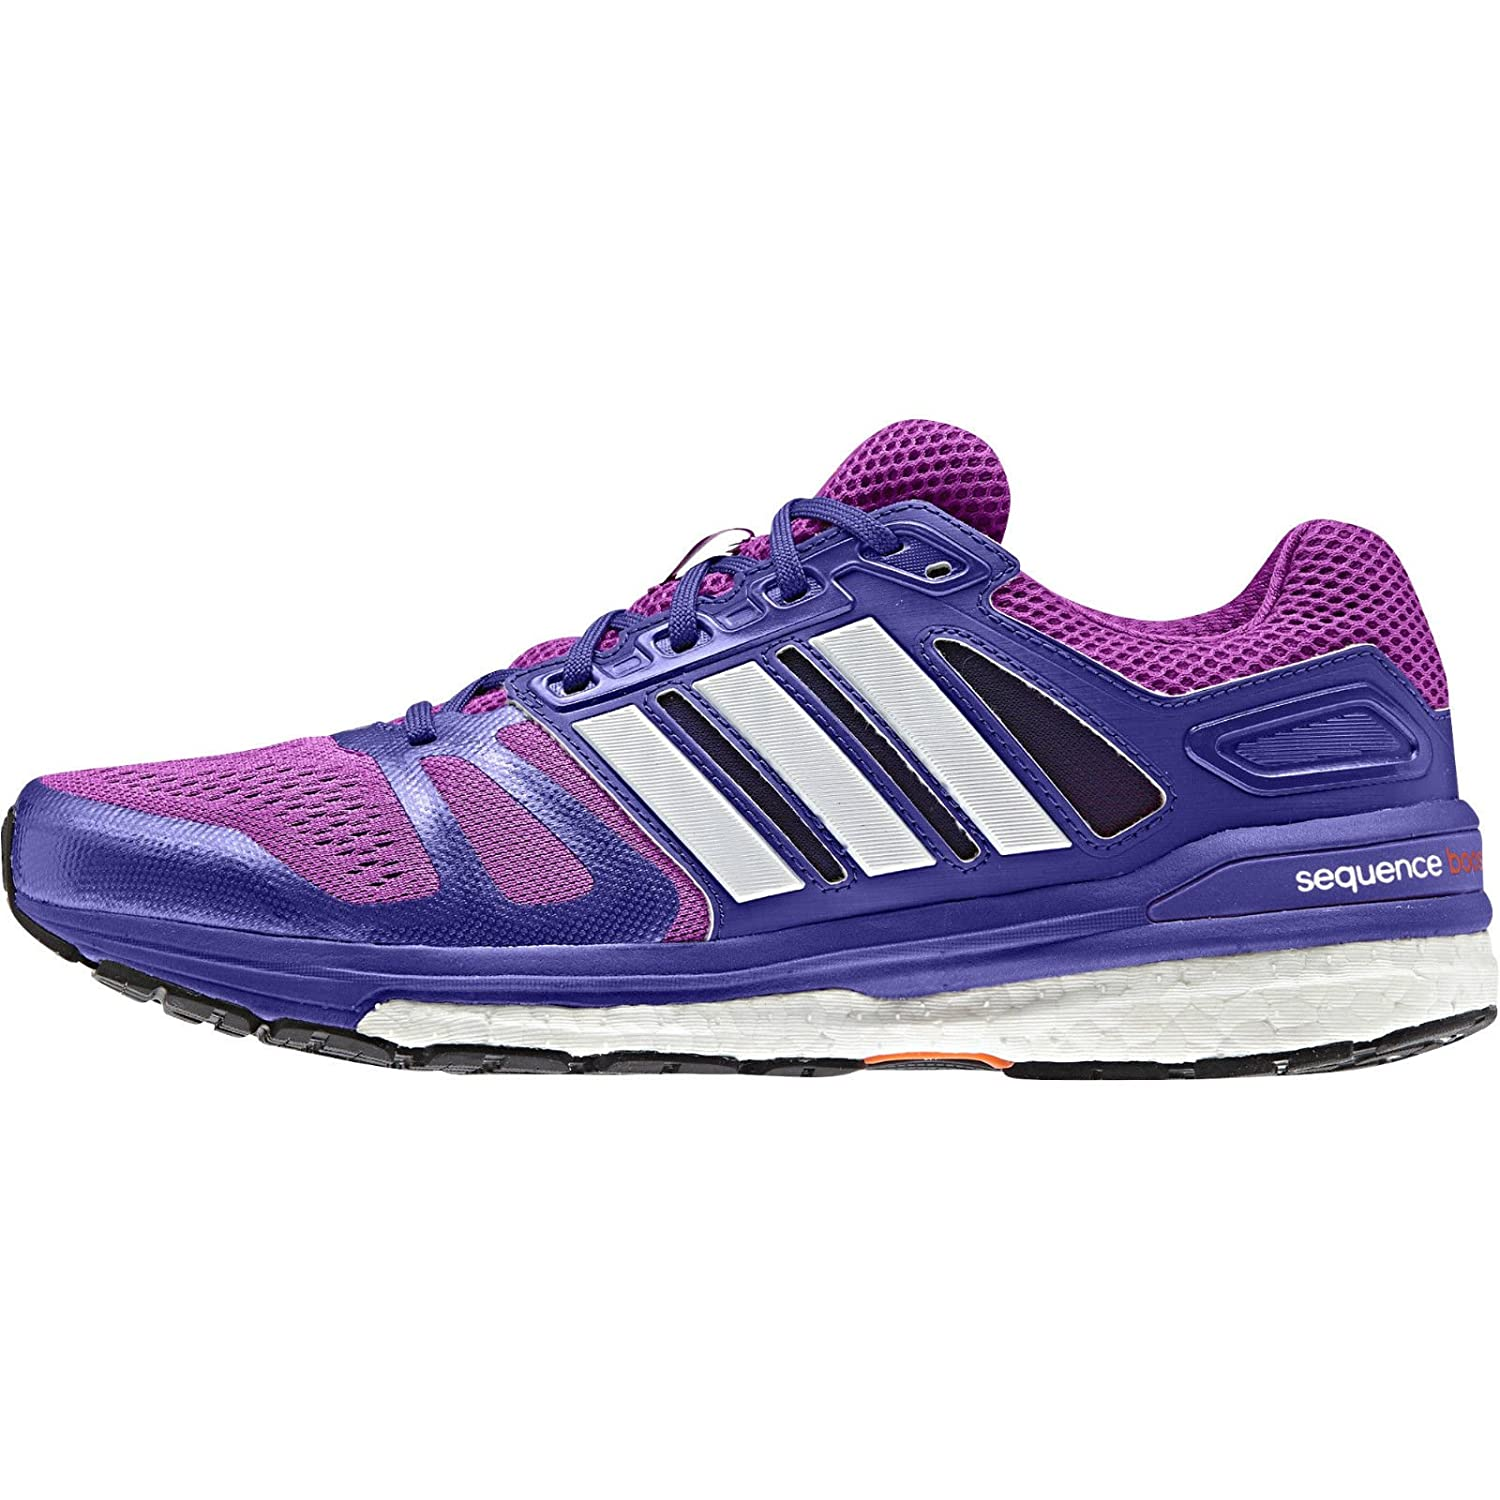 Adidas Supernova Sequence 7 Women s Running Shoes - SS15-8  Amazon.co.uk   Shoes   Bags 9569f809b8a